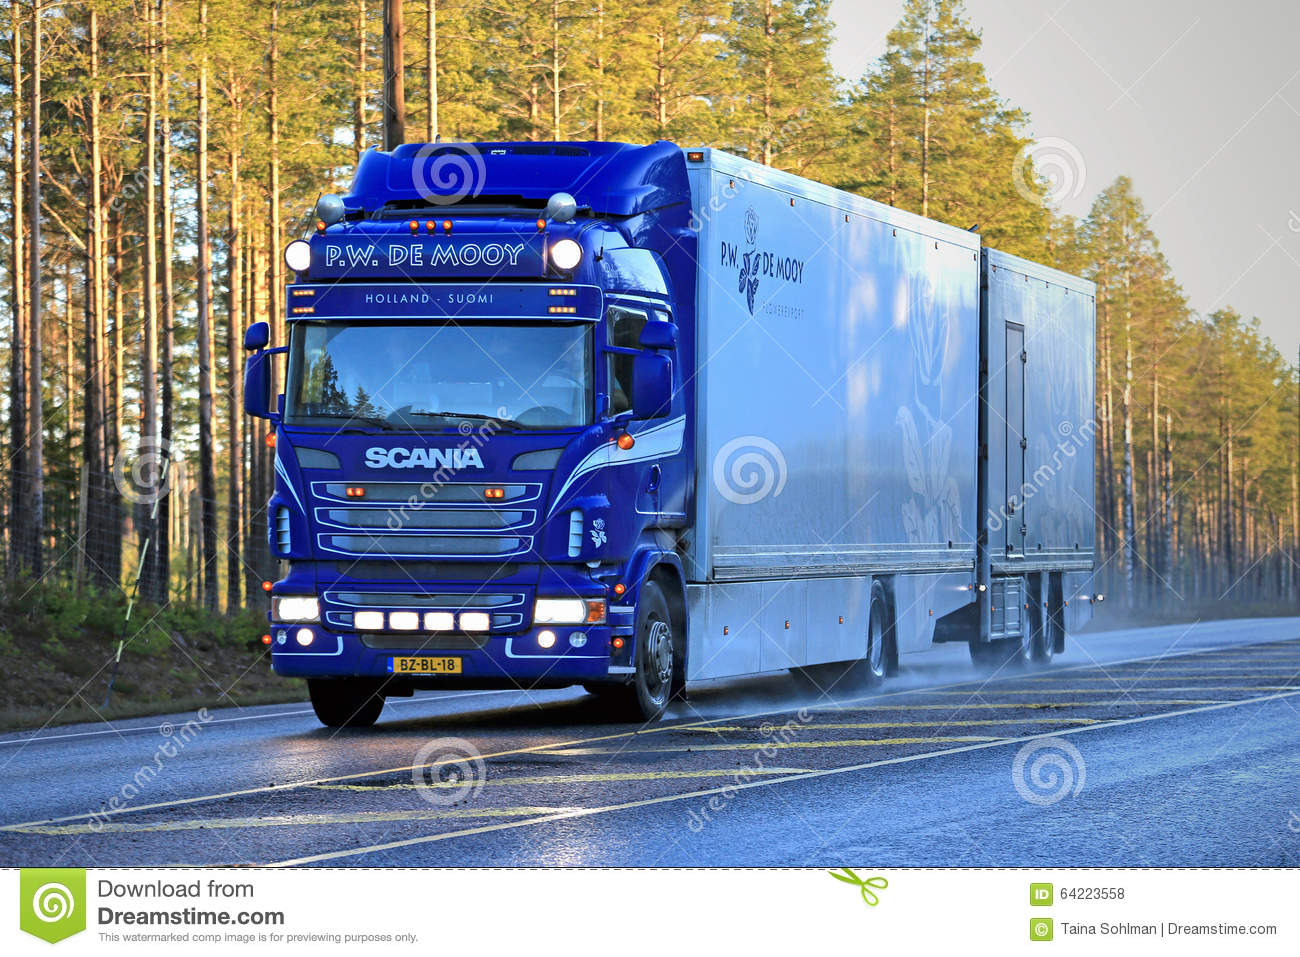 Stock Illustration Tractor Sketch Heavy Image63987049 as well 5 Evidences Prove Neil Armstrong Met Aliens On The Moon besides Custom Truck Body in addition Kenworth Logo Vector furthermore 1781 Transport Truck With Trucks wallpaper. on semi truck landscape